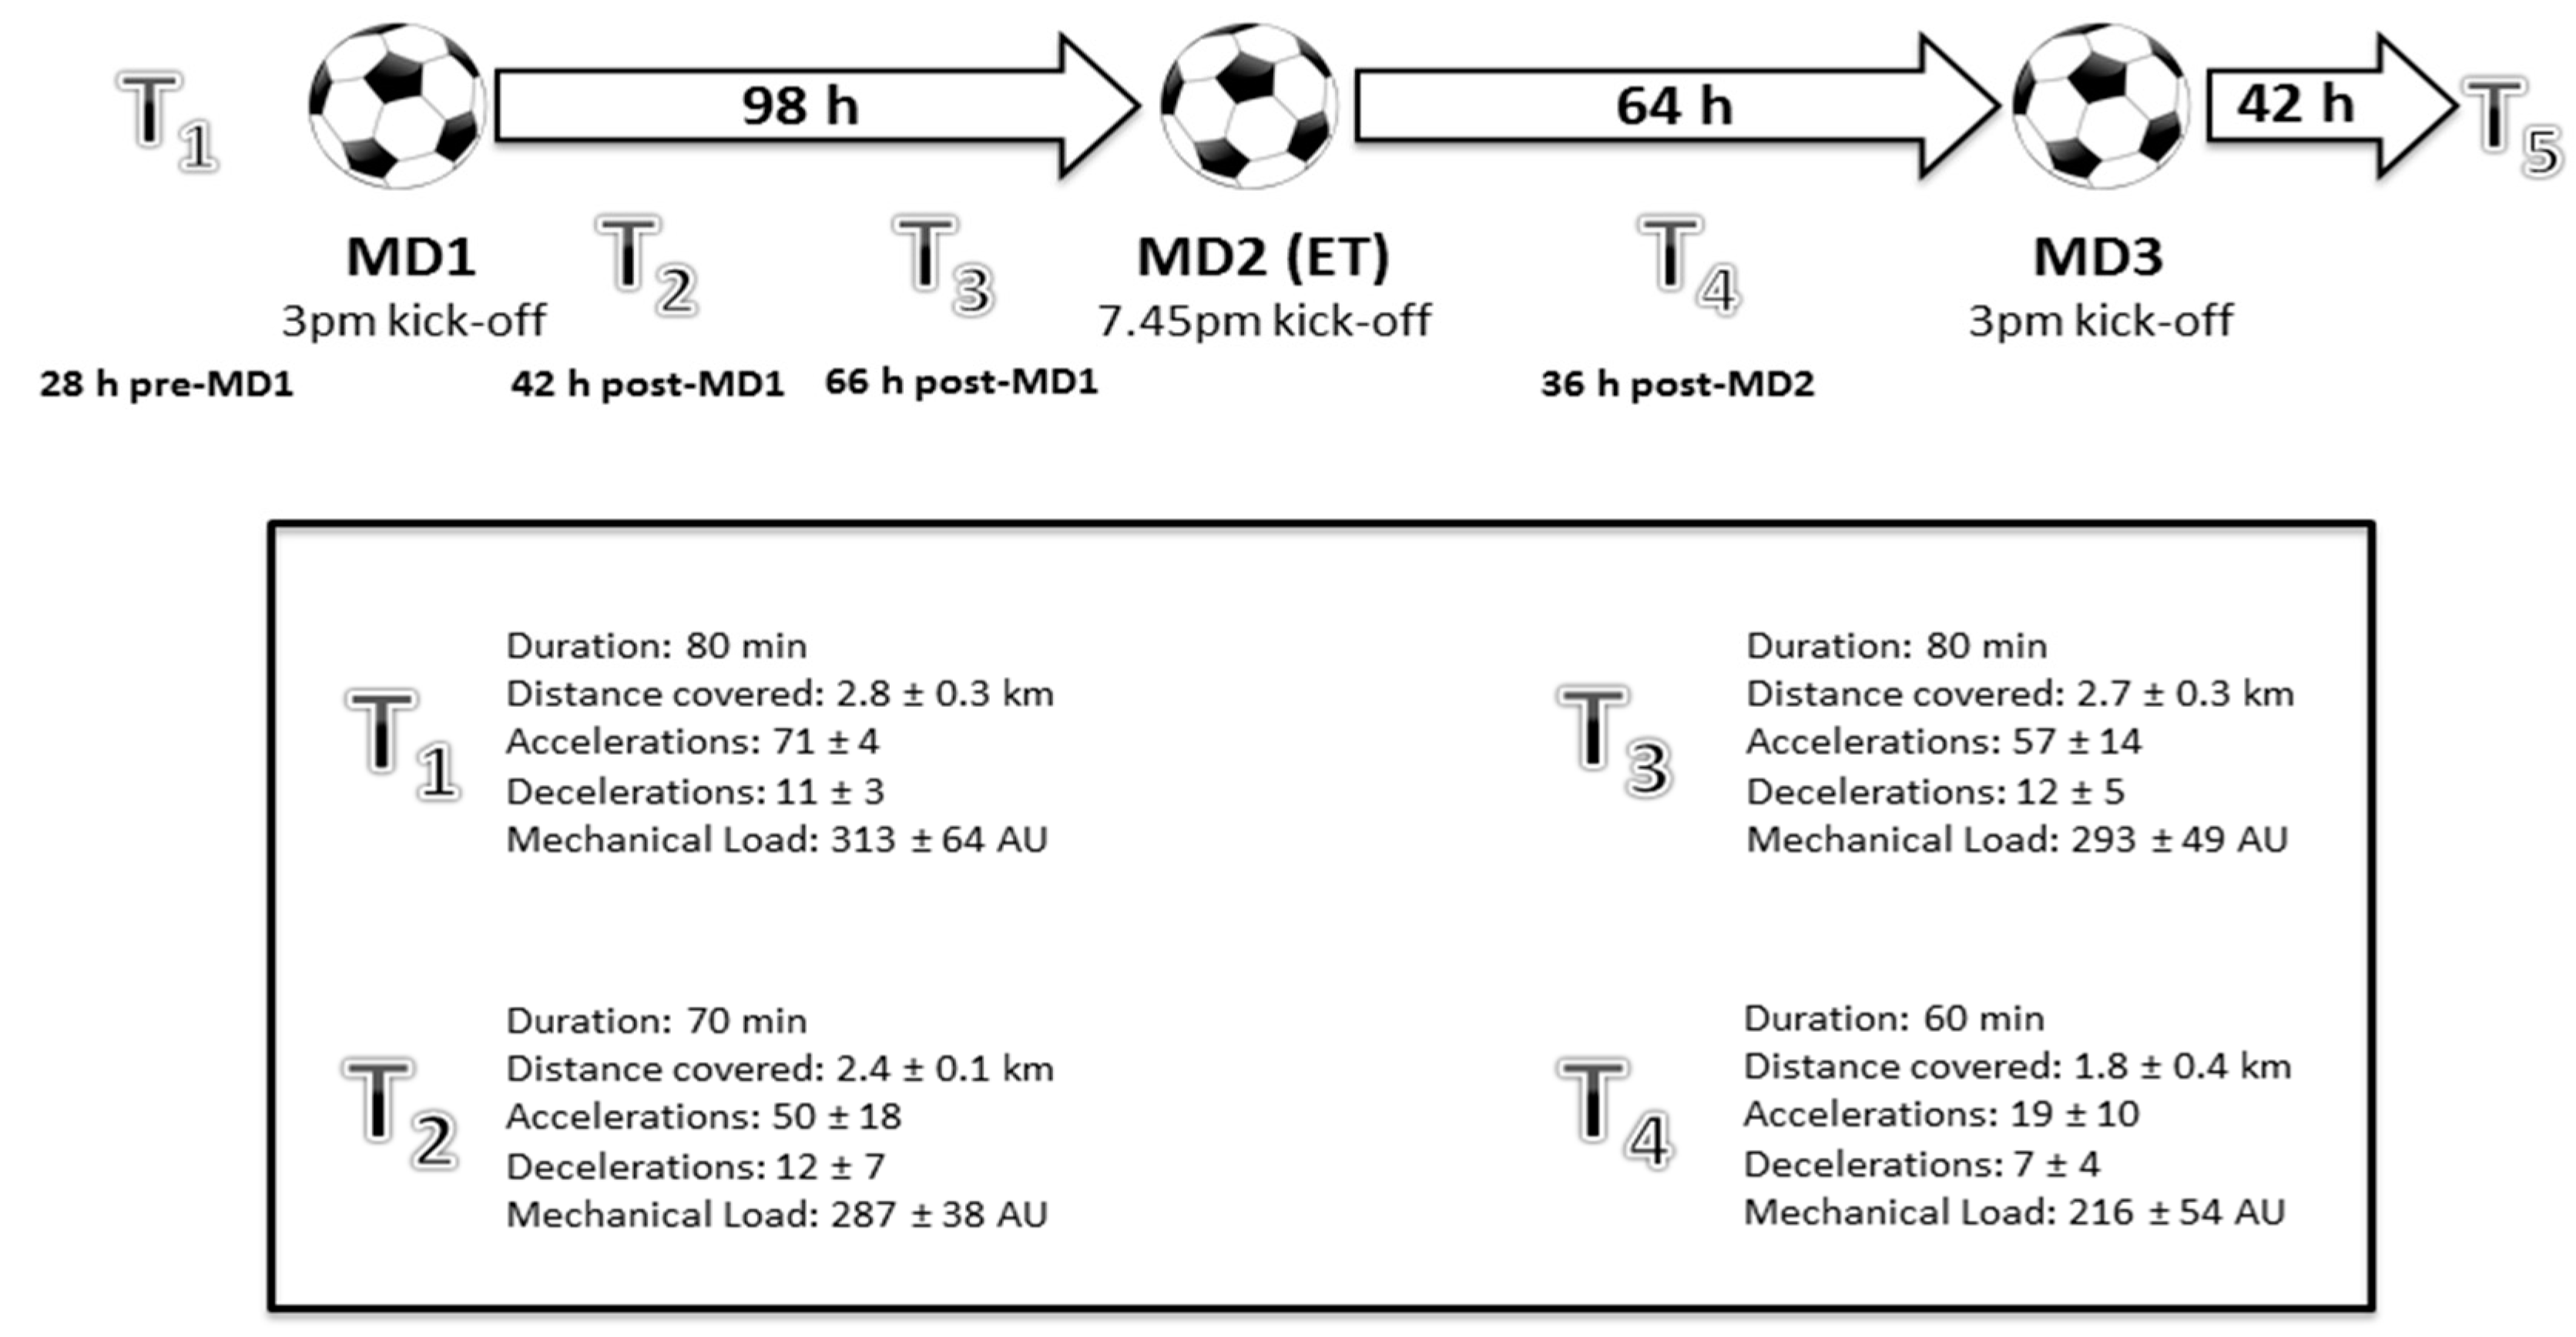 Catapult Engineering Schematics Sports Free Full Text The Impact Of 120 Minutes Match Play On No